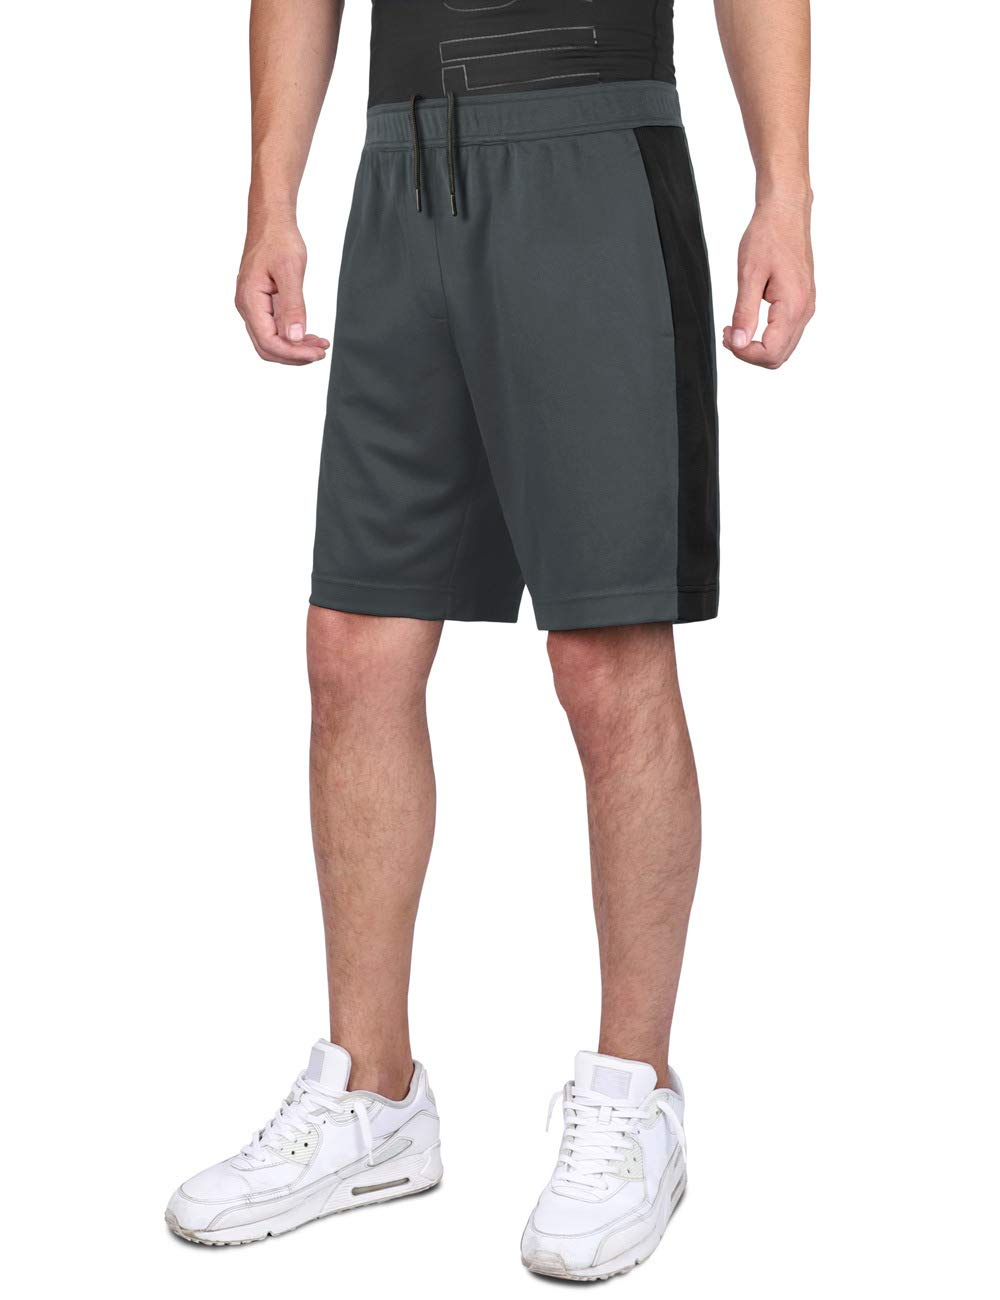 DISHANG Men's Performance Basketball Shorts Active Athletic Lightweight Workout Gym Shorts with Side Pockets Mesh Design